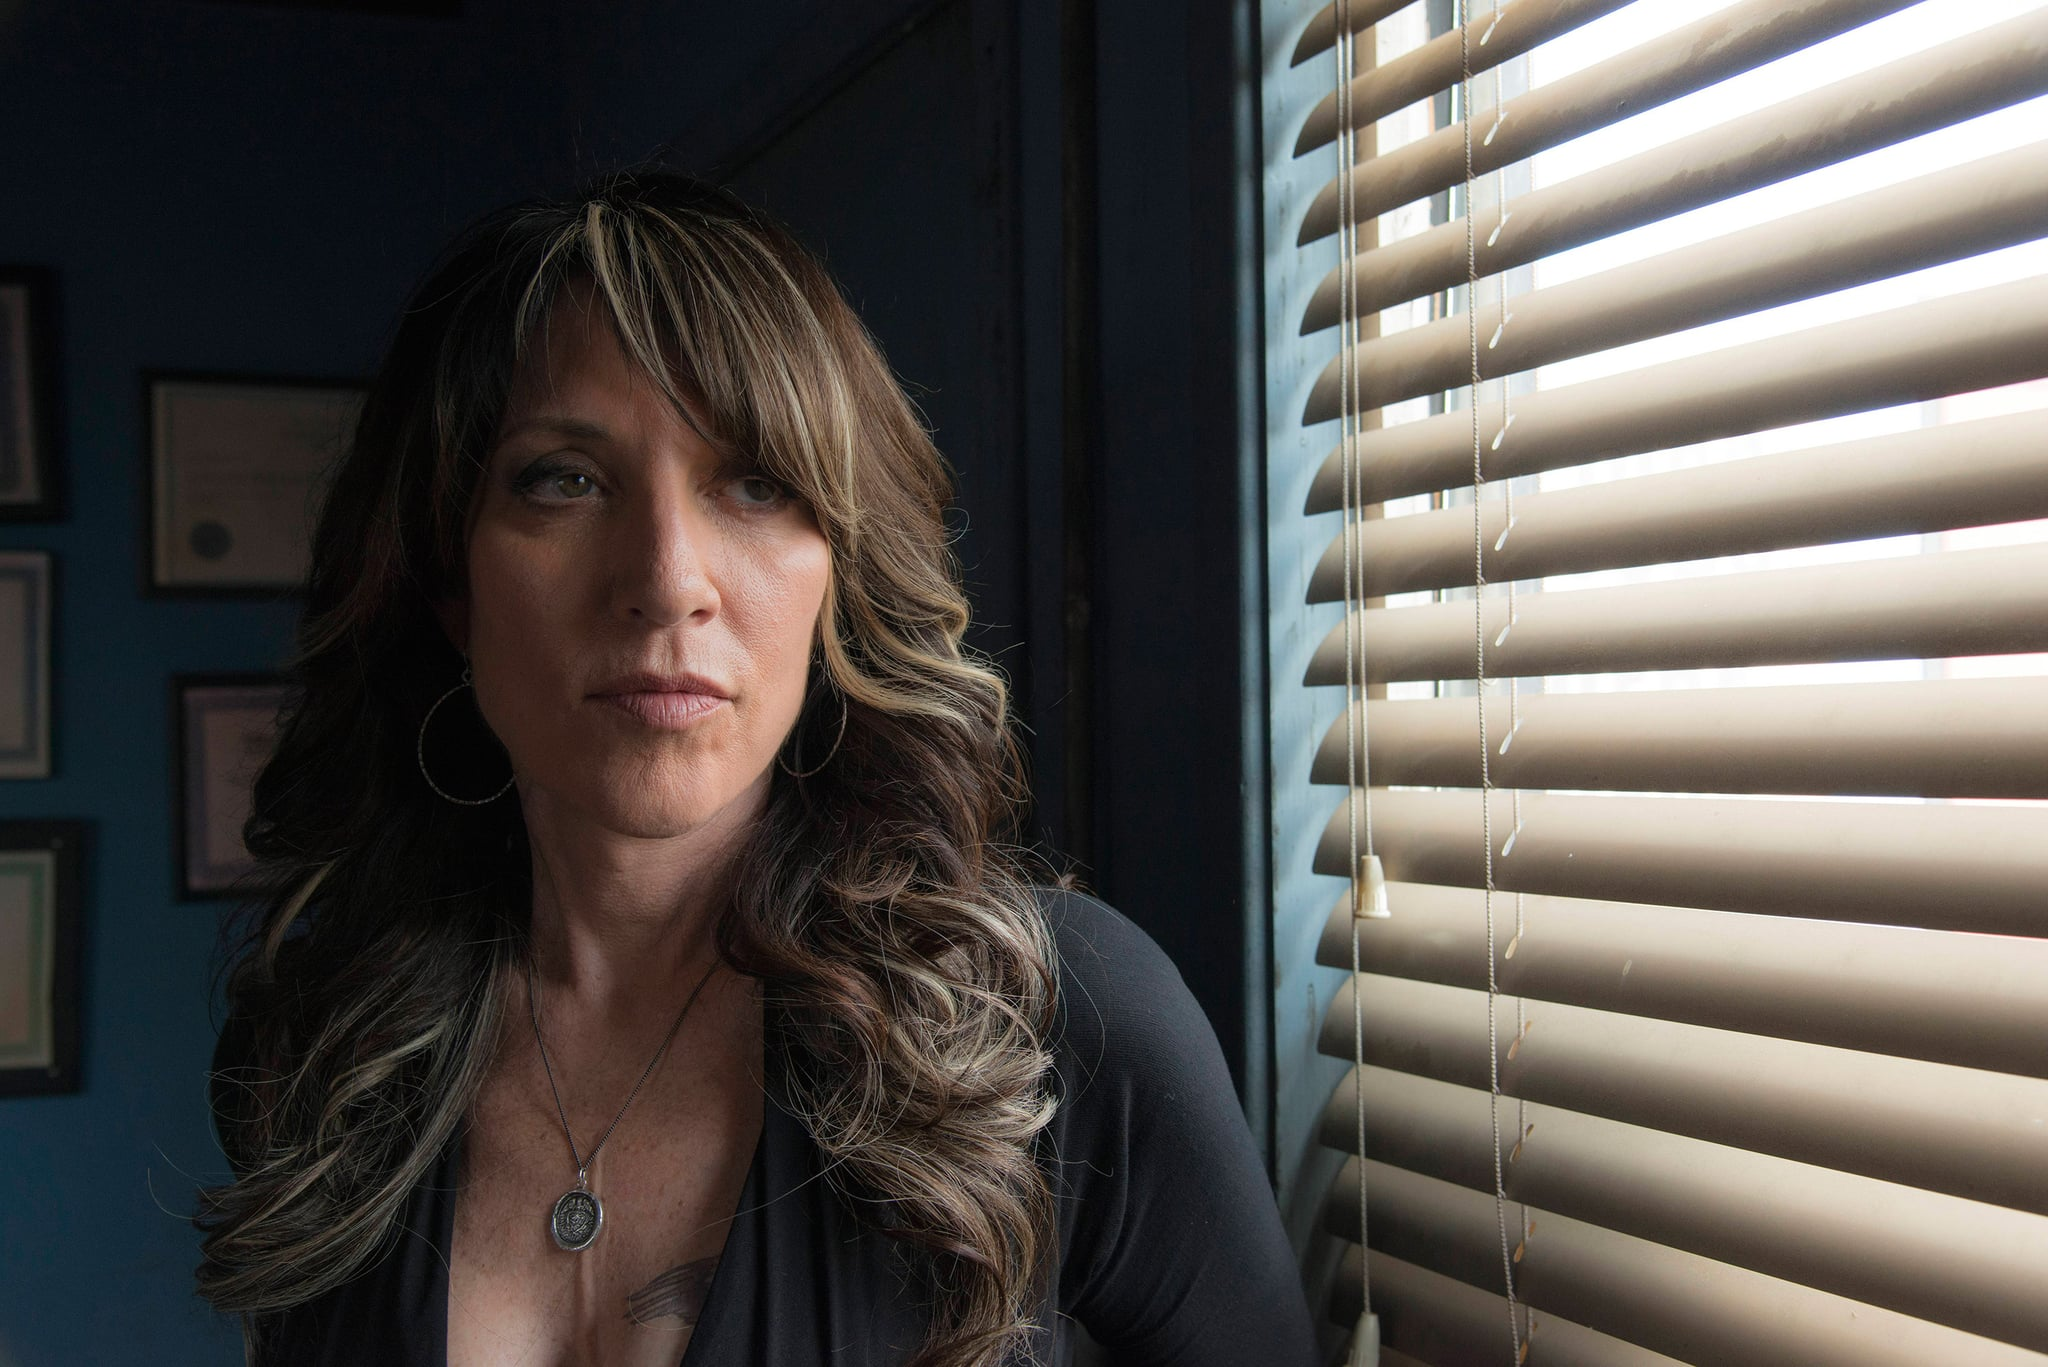 SONS OF ANARCHY, Katey Sagal in 'Straw' (Season 6, Episode 1, aired September 10, 2013), 2008-, ph: Prashant Gupta/FX/courtesy Everett Collection